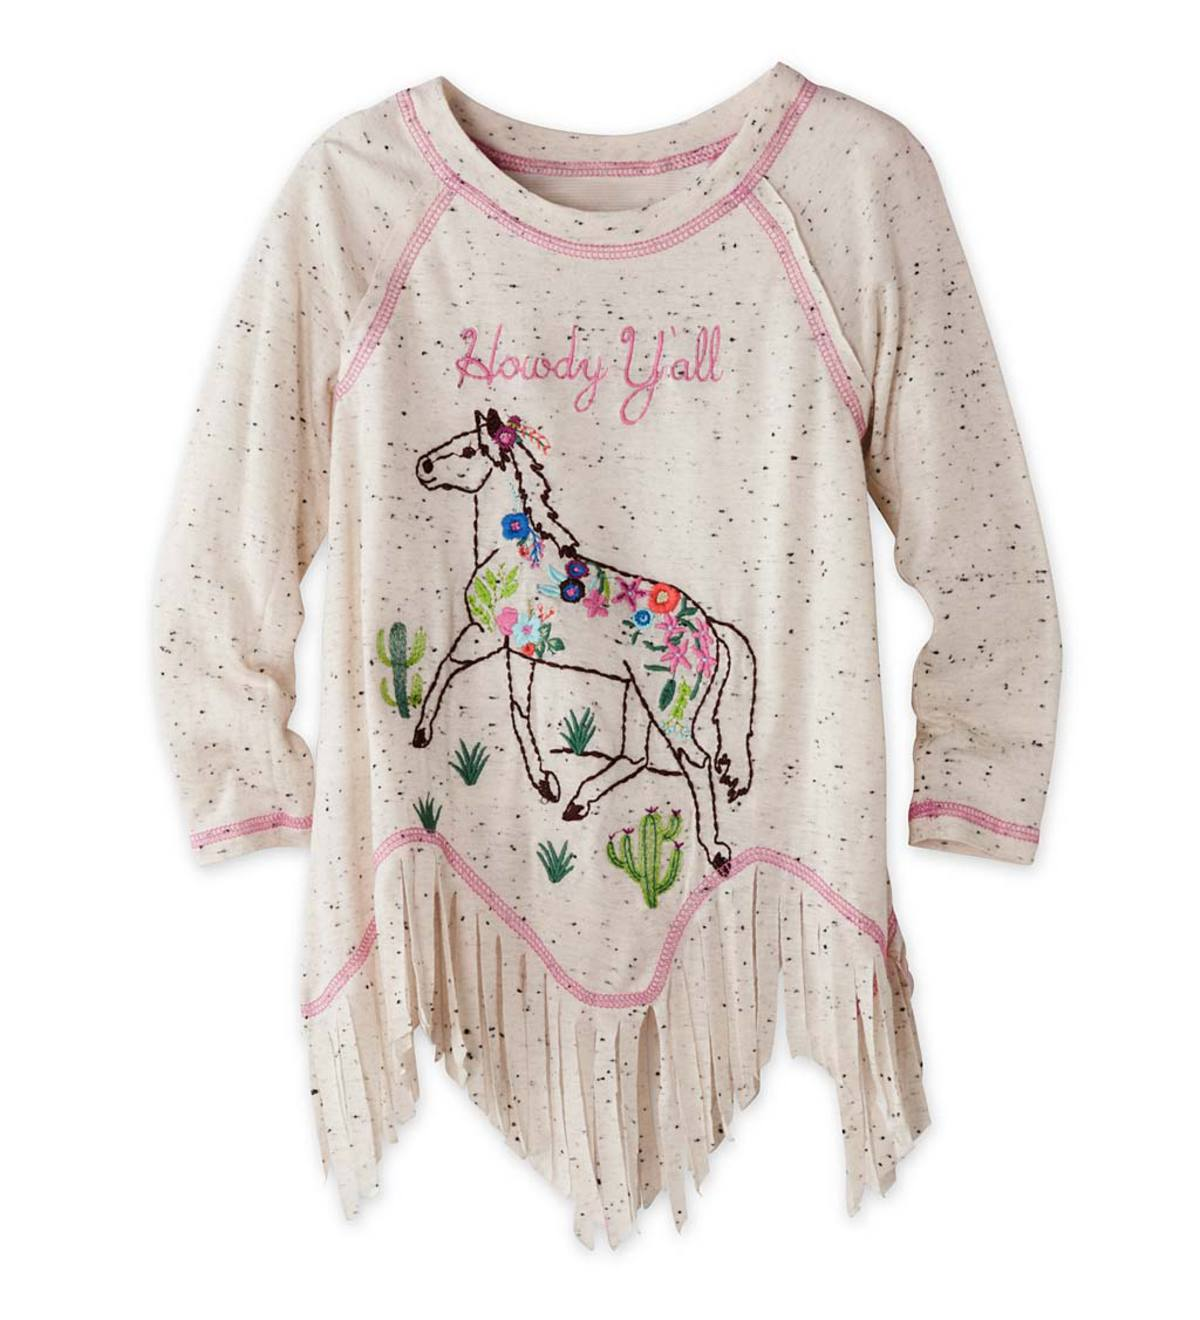 Fringed Horse Top - Ivory - 18M